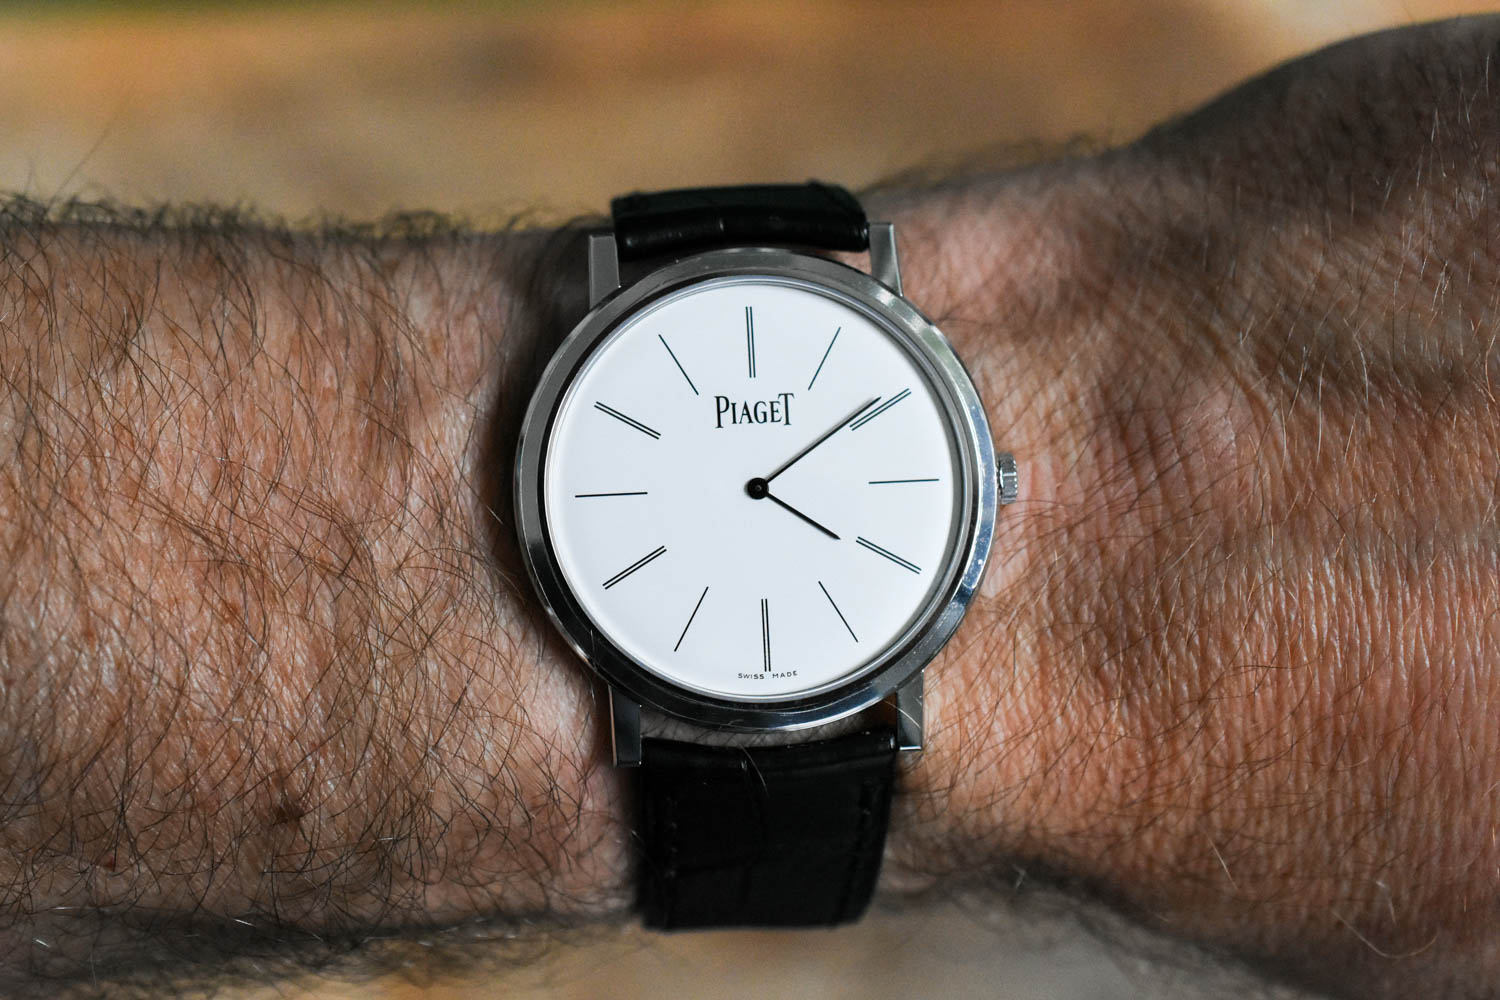 Reviewing the Piaget Altiplano - the Perfect Hand-Wound Dress Watch